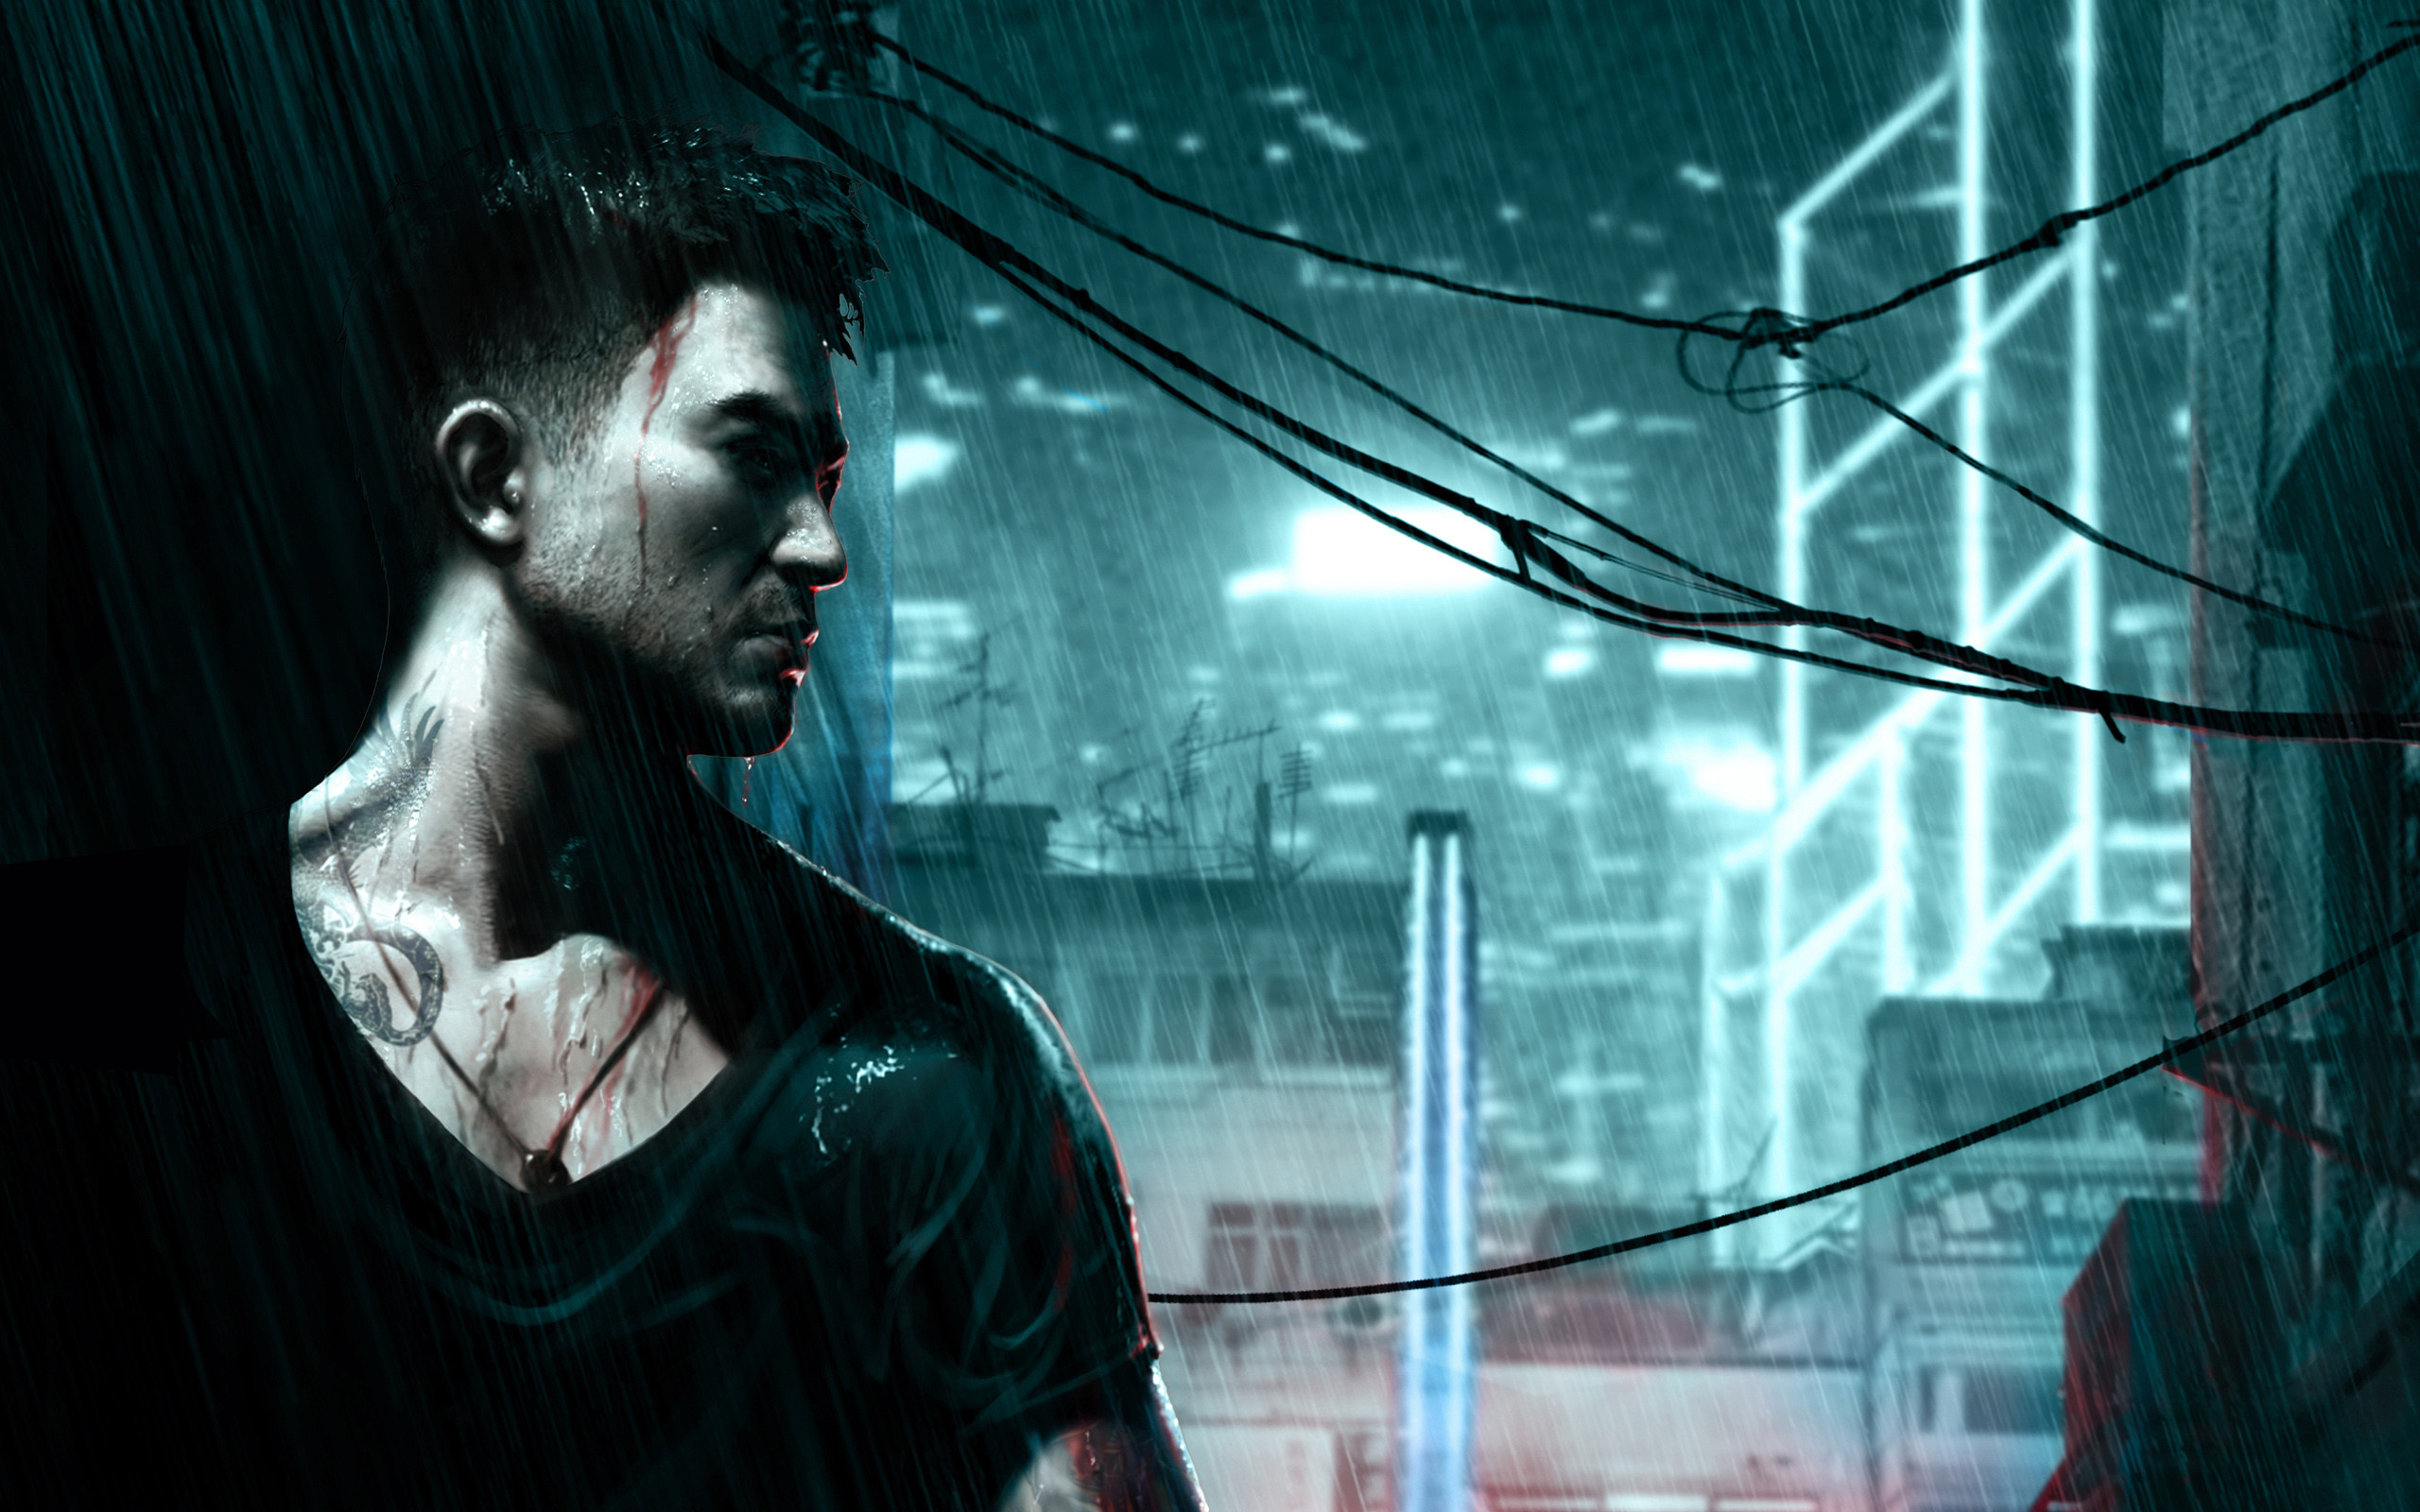 2560x1600 Sleeping Dogs Wallpaper Wrap-Up